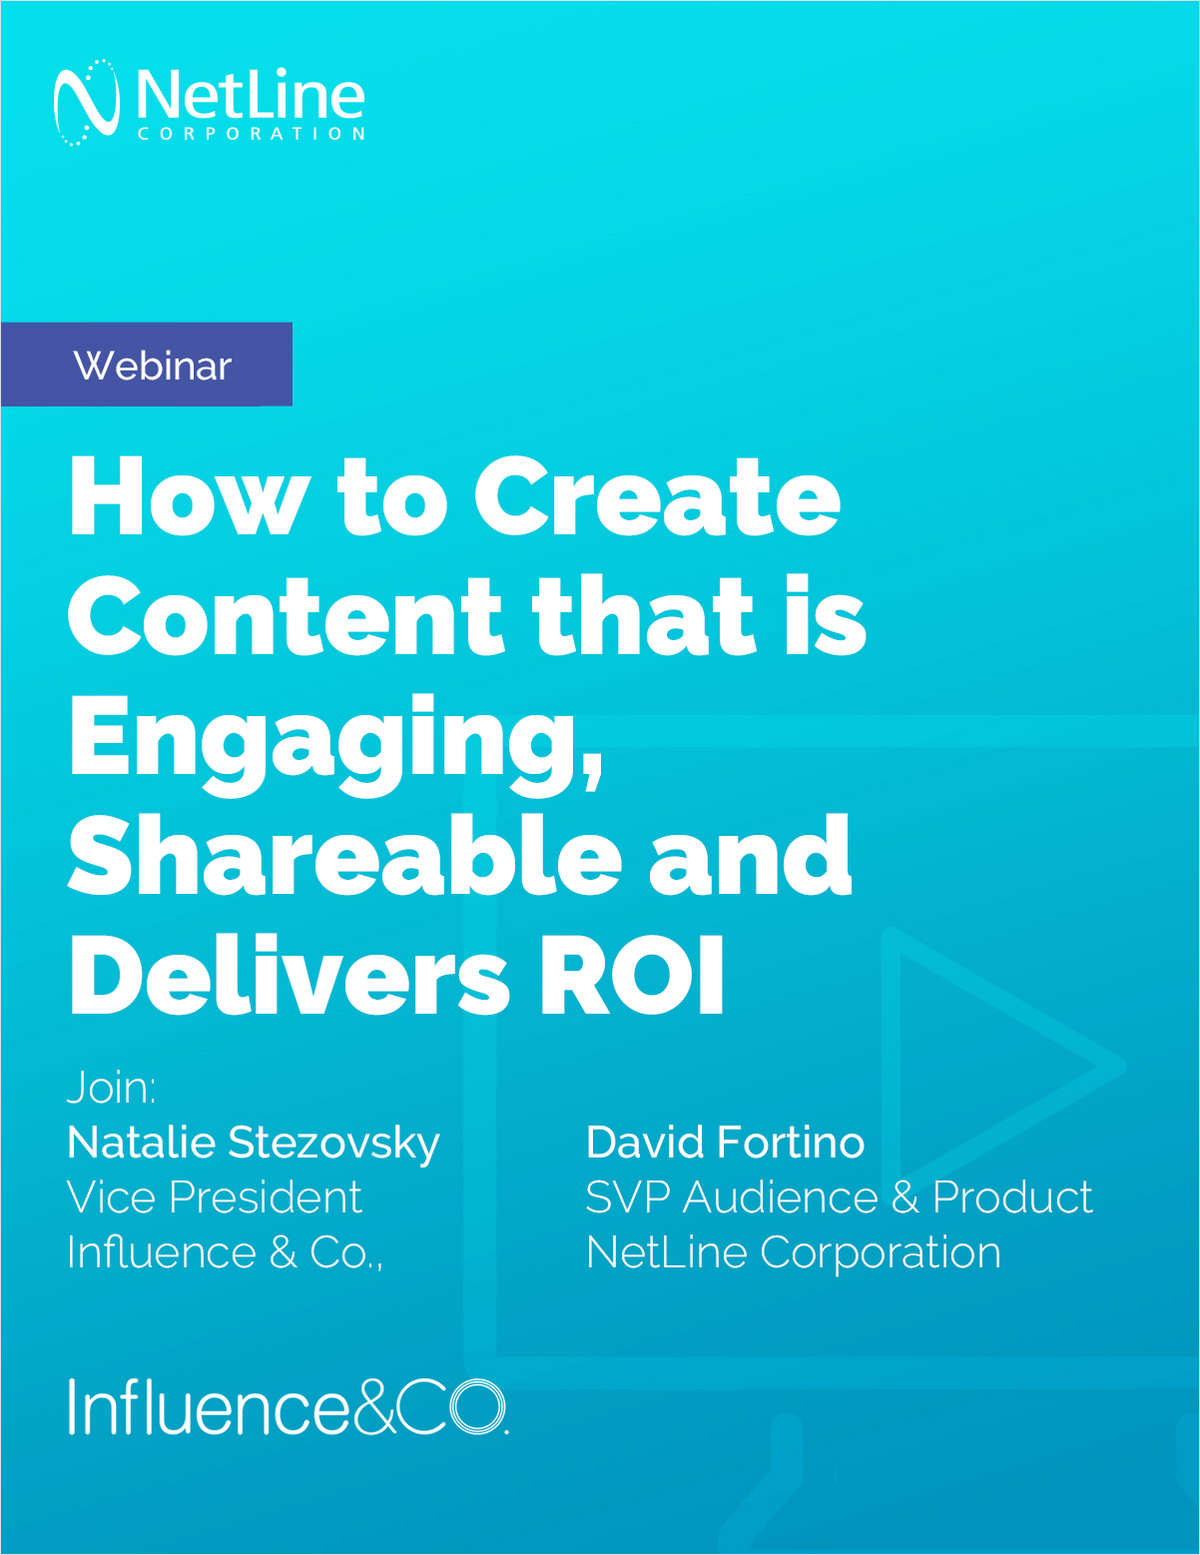 Webinar: How to Create Content that is Engaging, Shareable and Delivers ROI